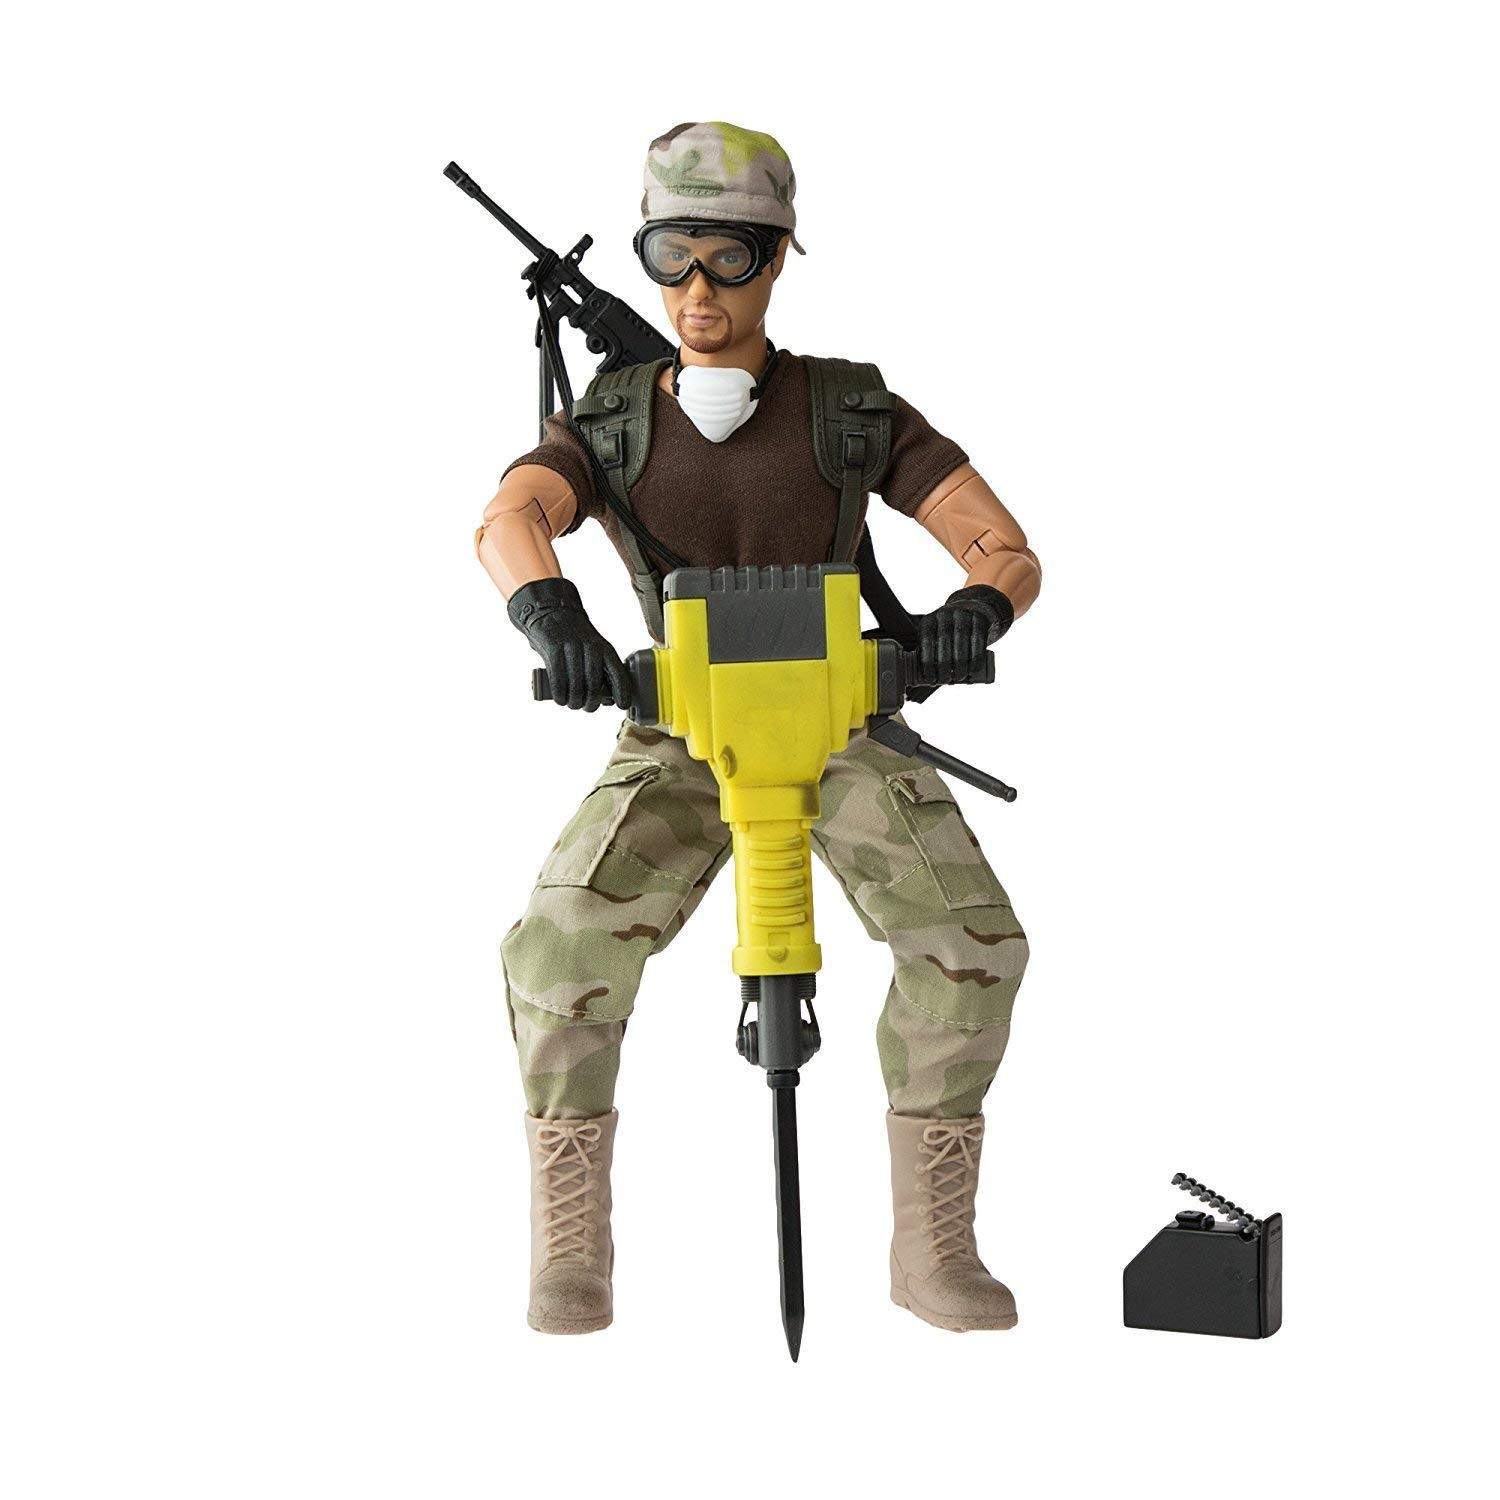 World Peacekeepers Action Figure Army Toys 12 Inch Military Action Figure Army Man Army... by World Peacekeepers